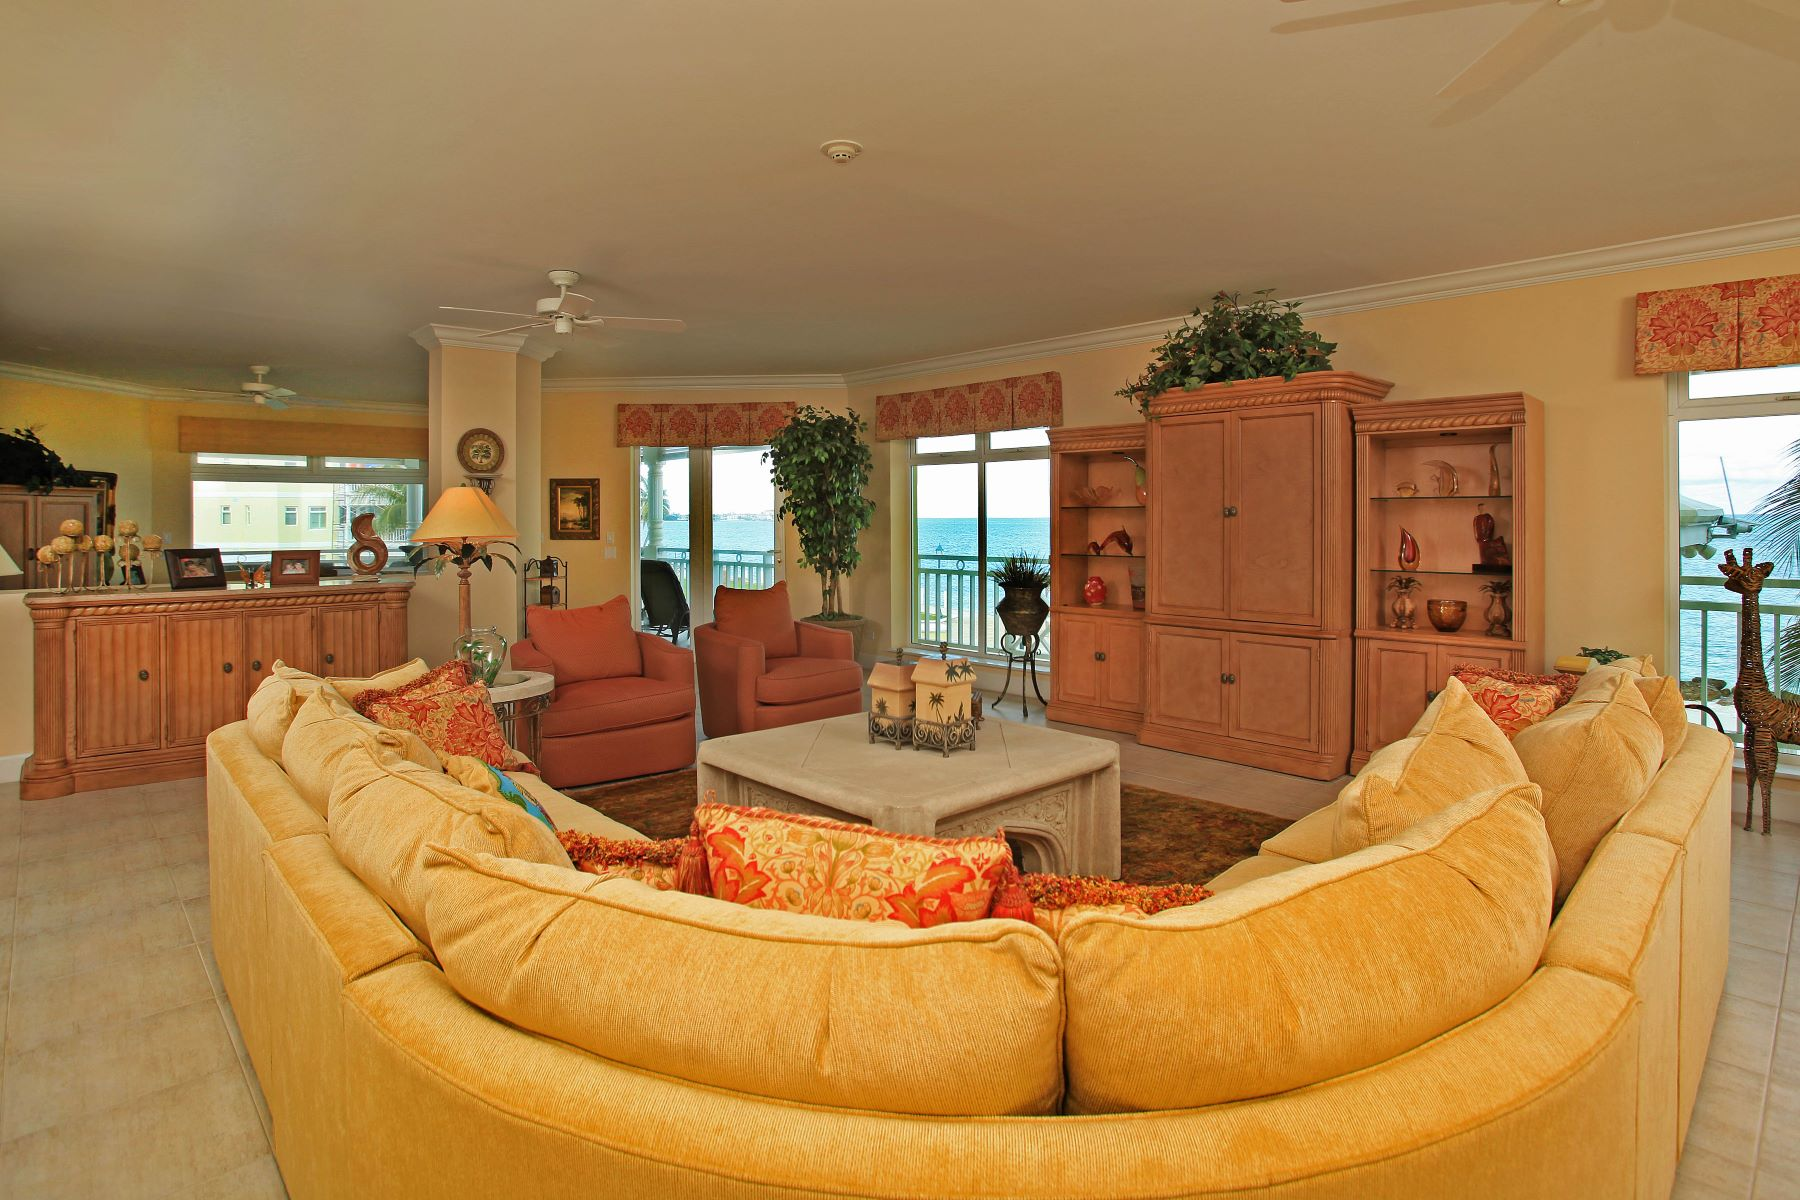 Single Family Home for Sale at Bayroc Beachfront Condominium Bayroc, Cable Beach, Nassau And Paradise Island Bahamas